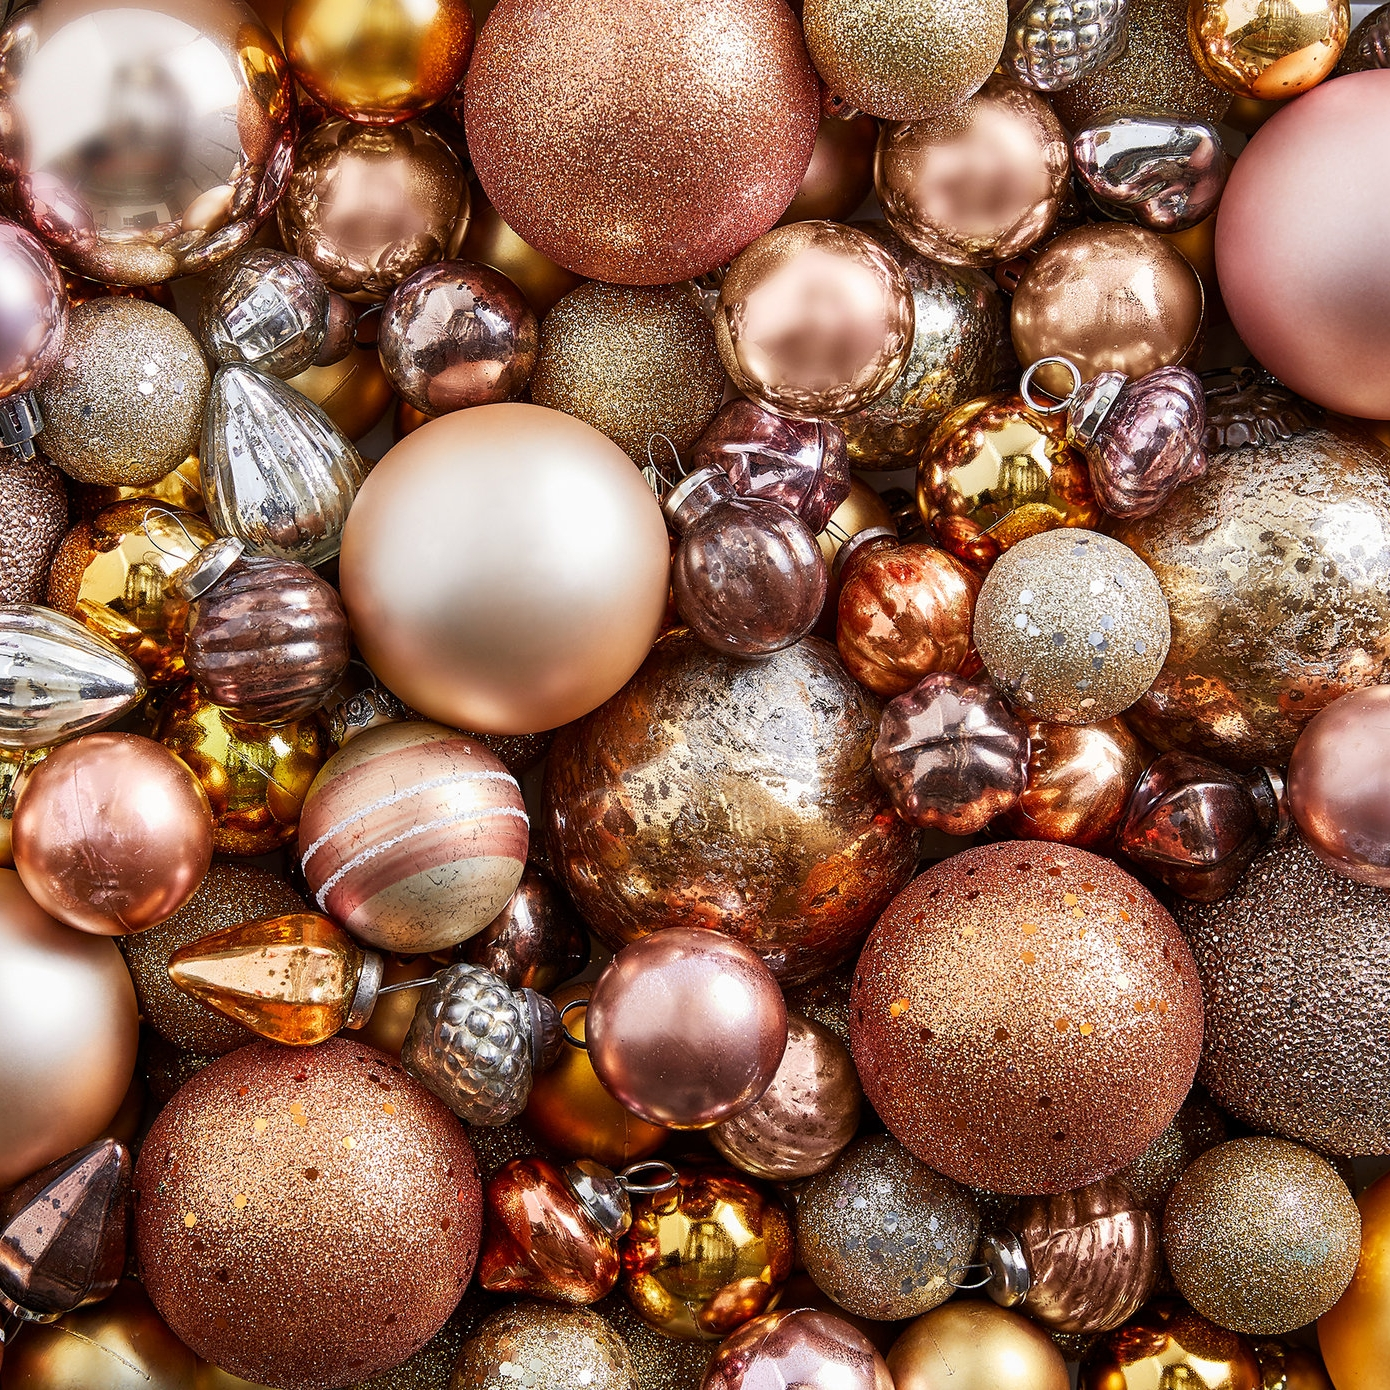 17_Q4_sfly_life_holiday_kop_copperballorn_background_a.jpg